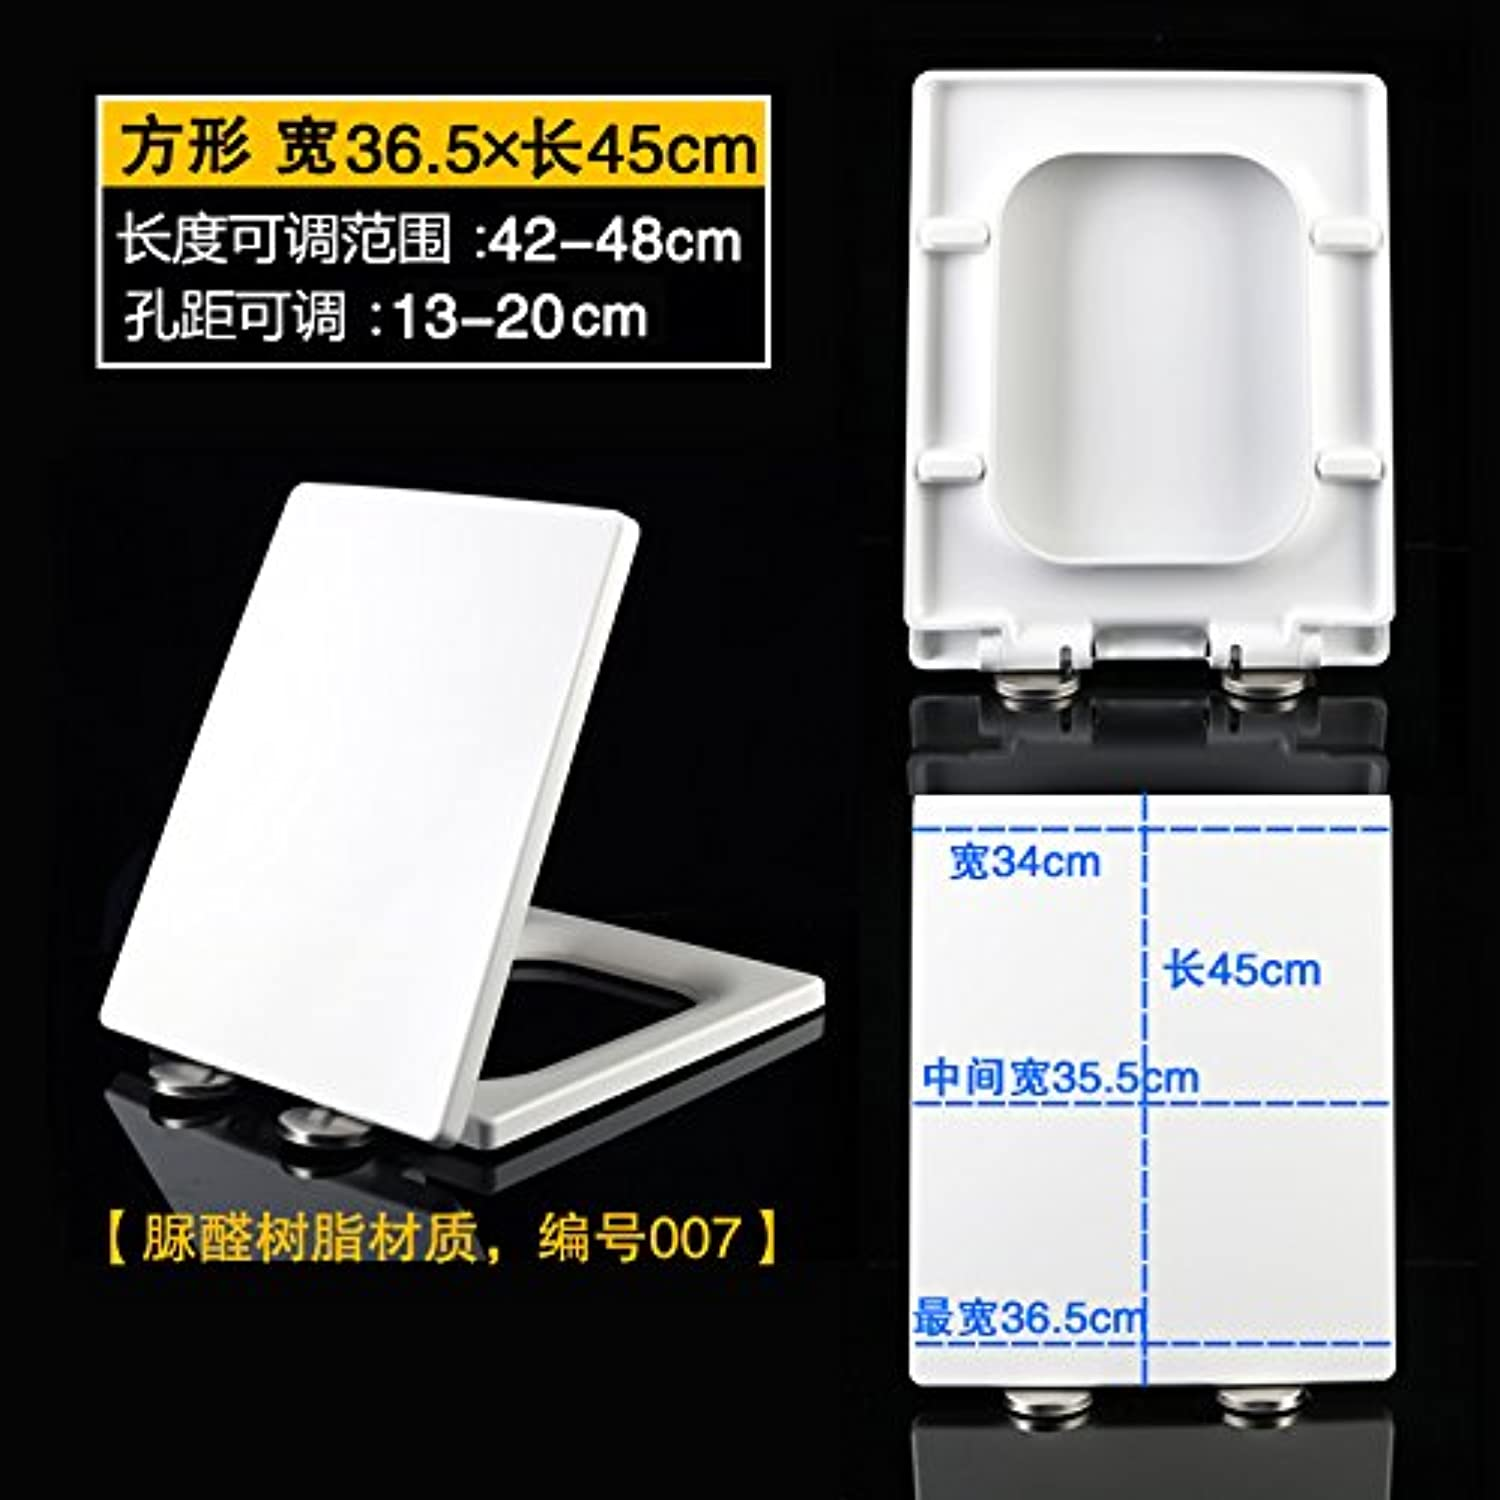 Topseh Square Square Thick Pp Urea Formaldehyde Resin Toilet Cover General Slow Down The Toilet Cover Old Toilet Toilet Seat Cover,Square Urea Formaldehyde 007 [Width 36.5 Length 42-48]Simple Modern Comfortable Bacteria Removal Home Toilet Common